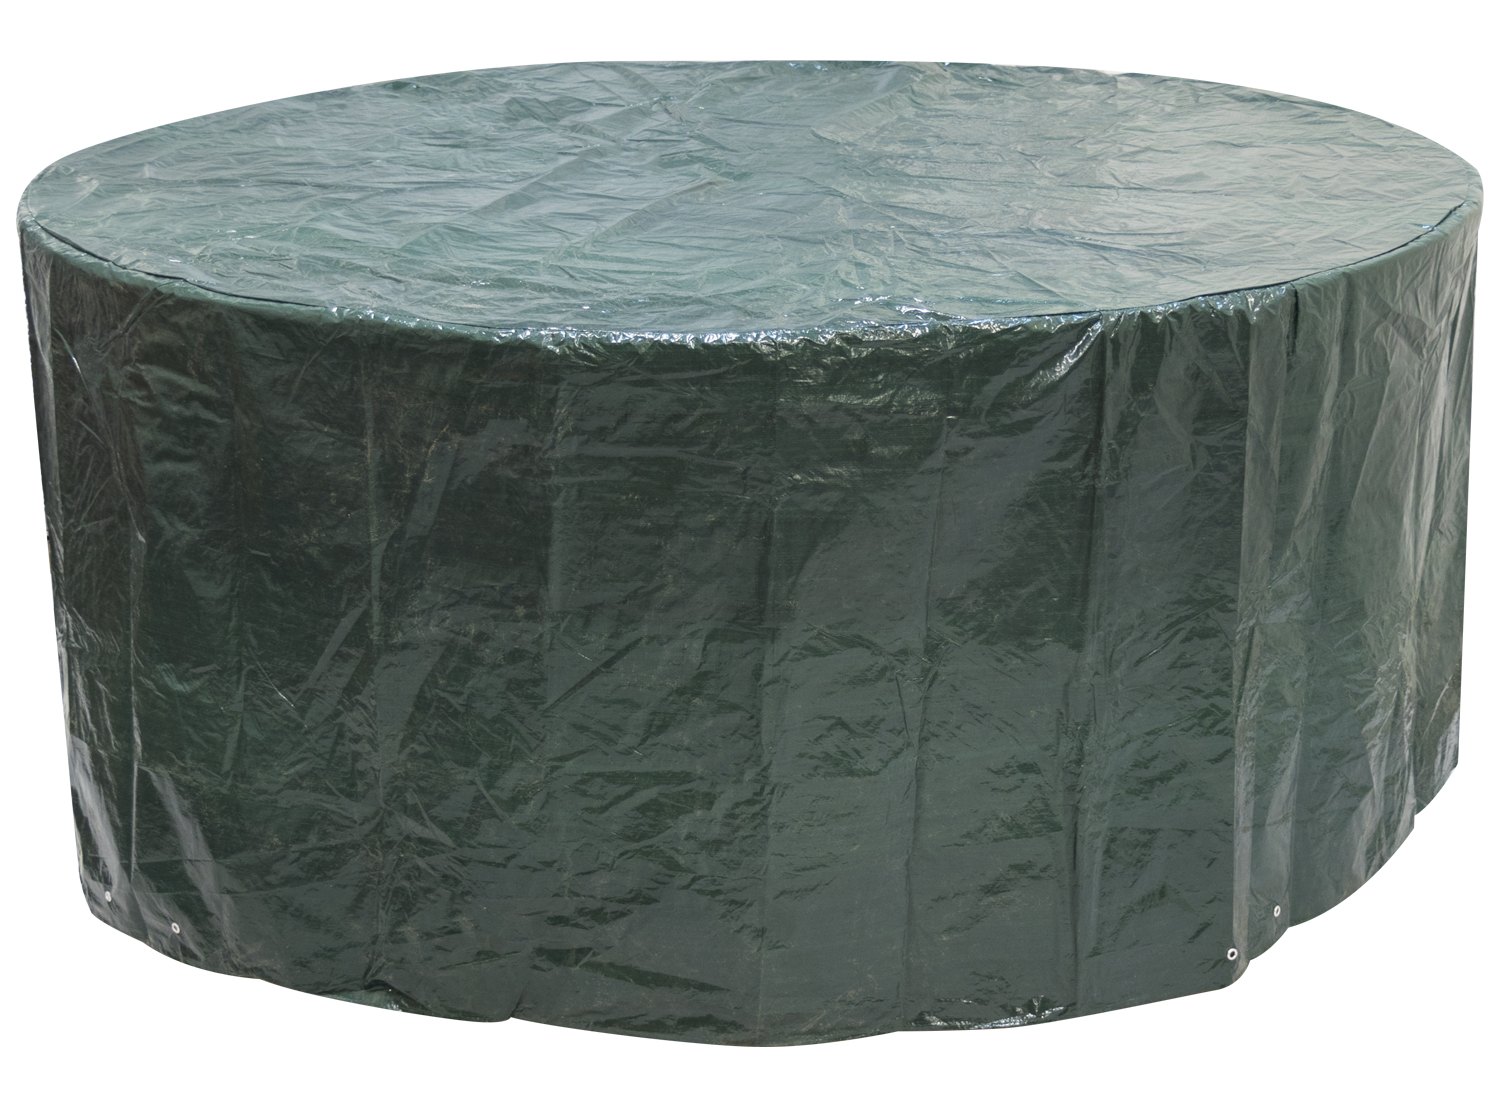 Image of: Lowes Round Patio Table Cover Ideas